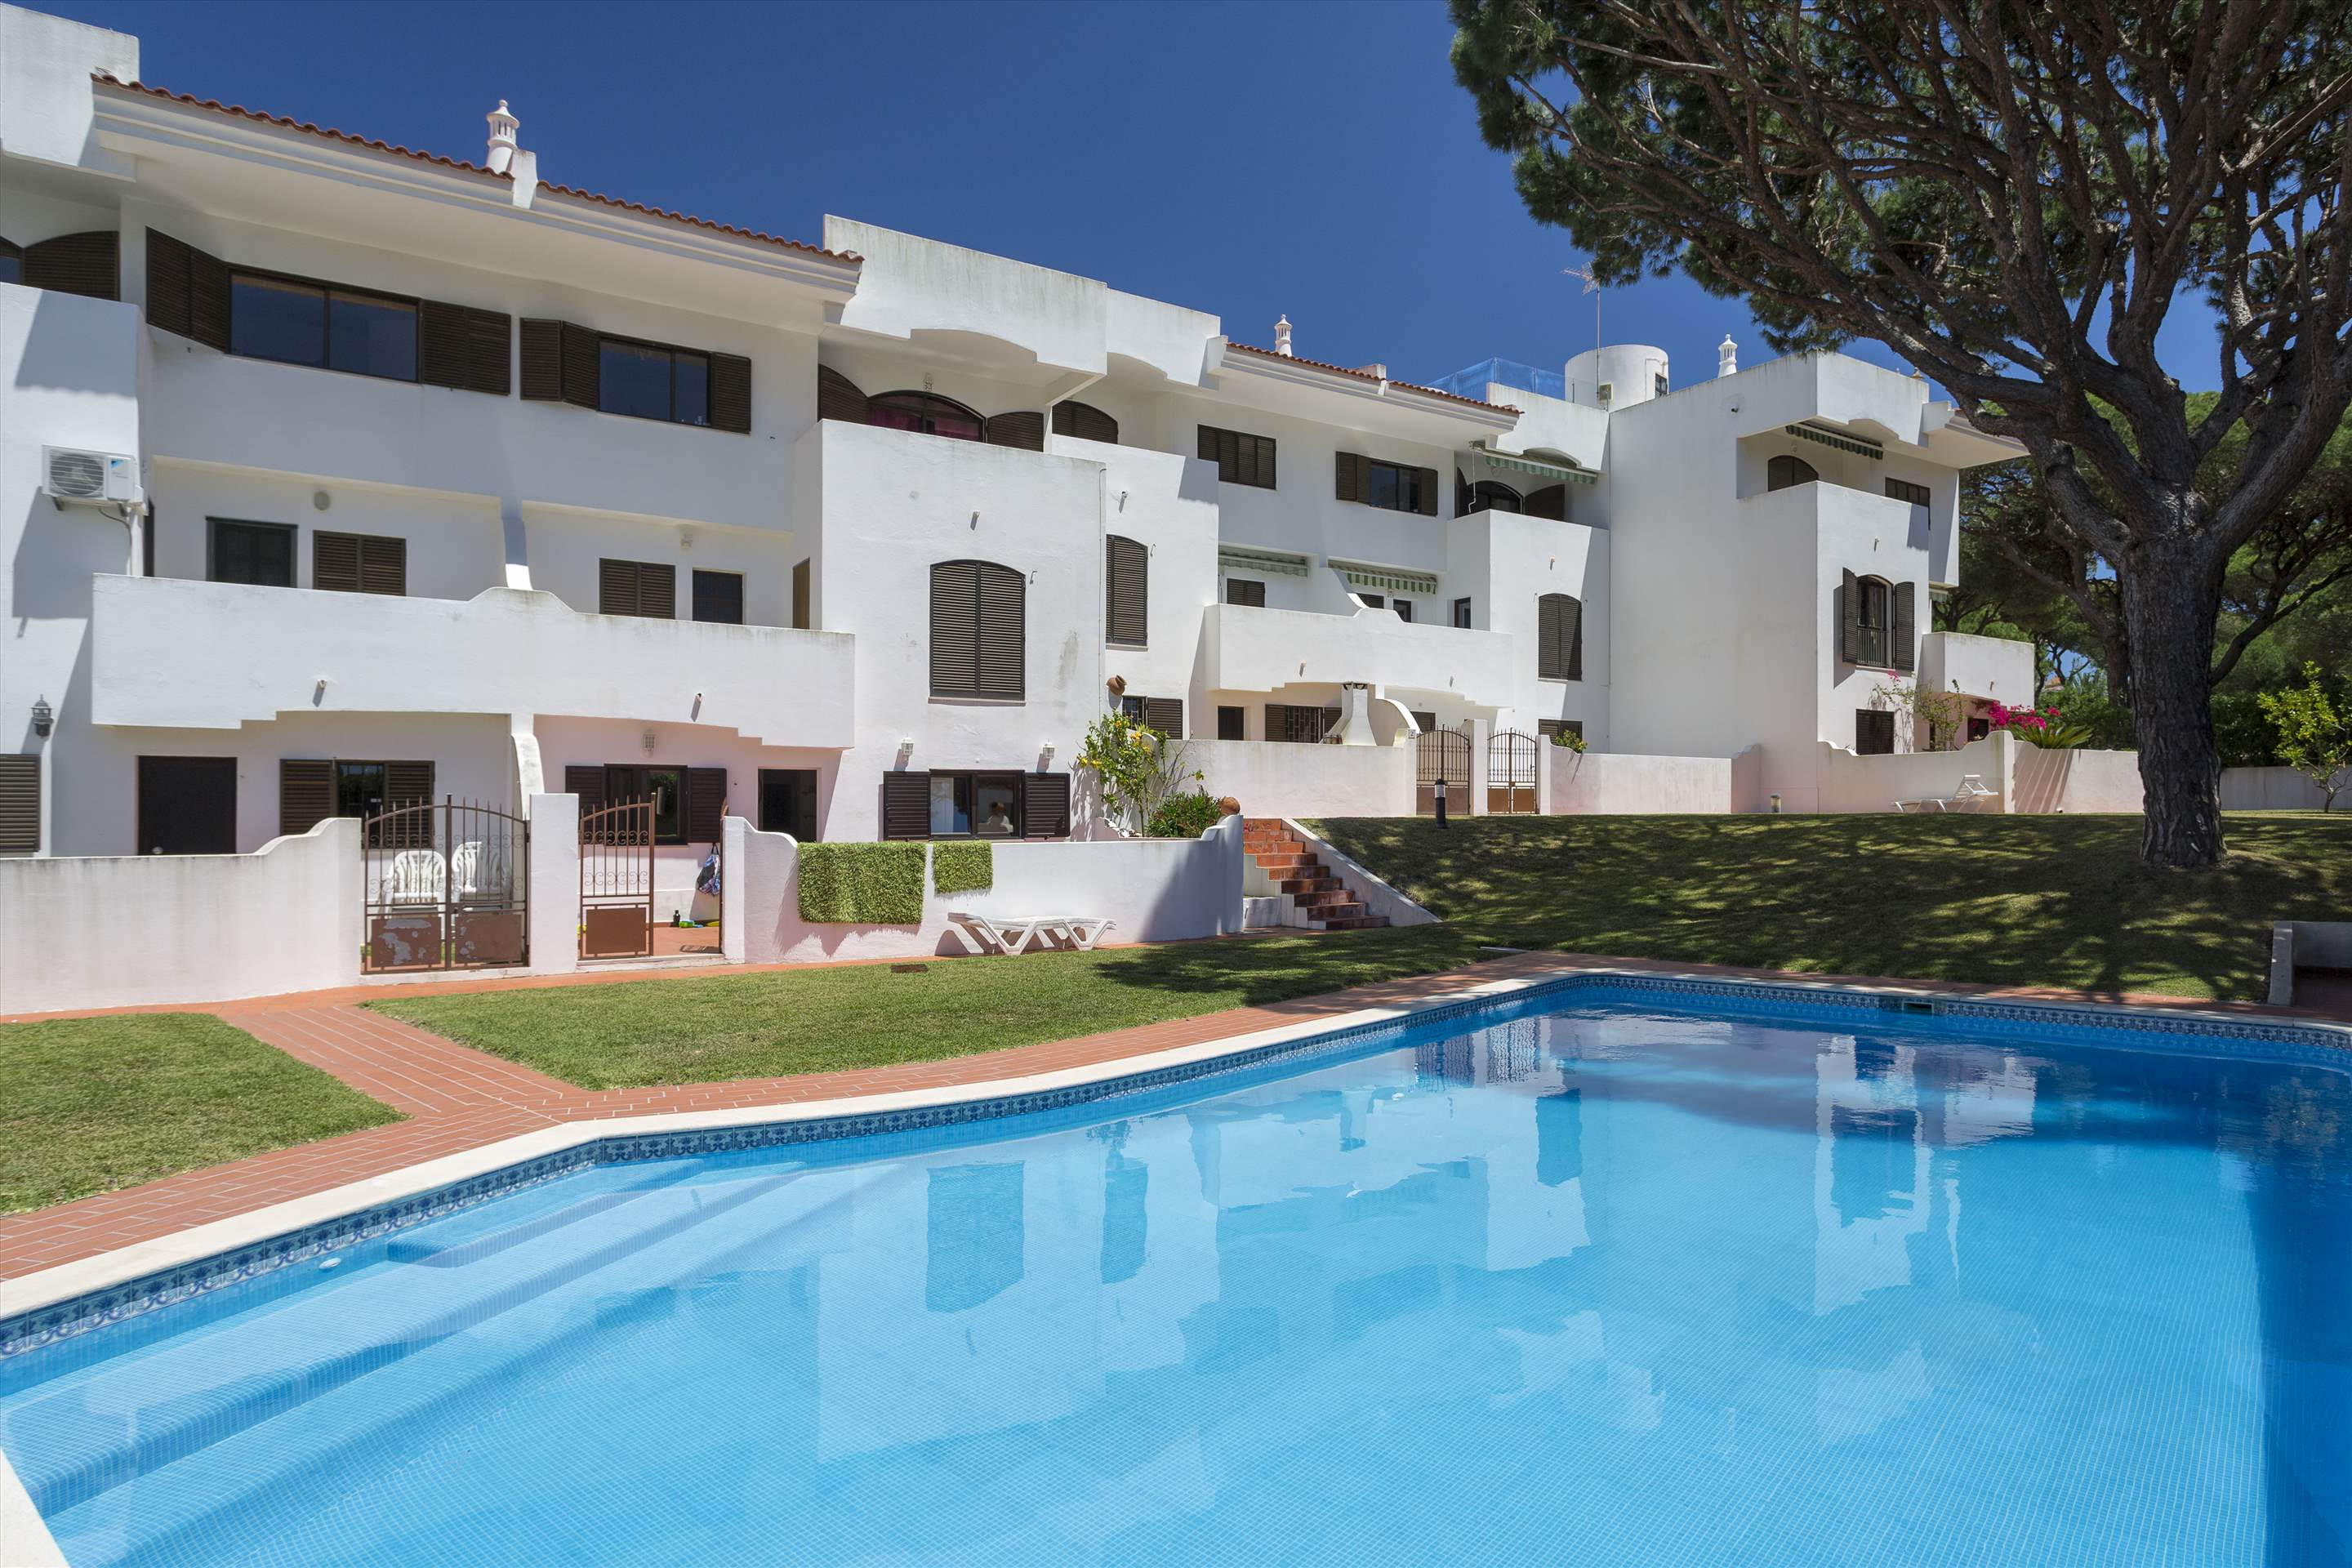 Apartment Jardim do Mar, 2 bedroom apartment in Vilamoura Area, Algarve Photo #1